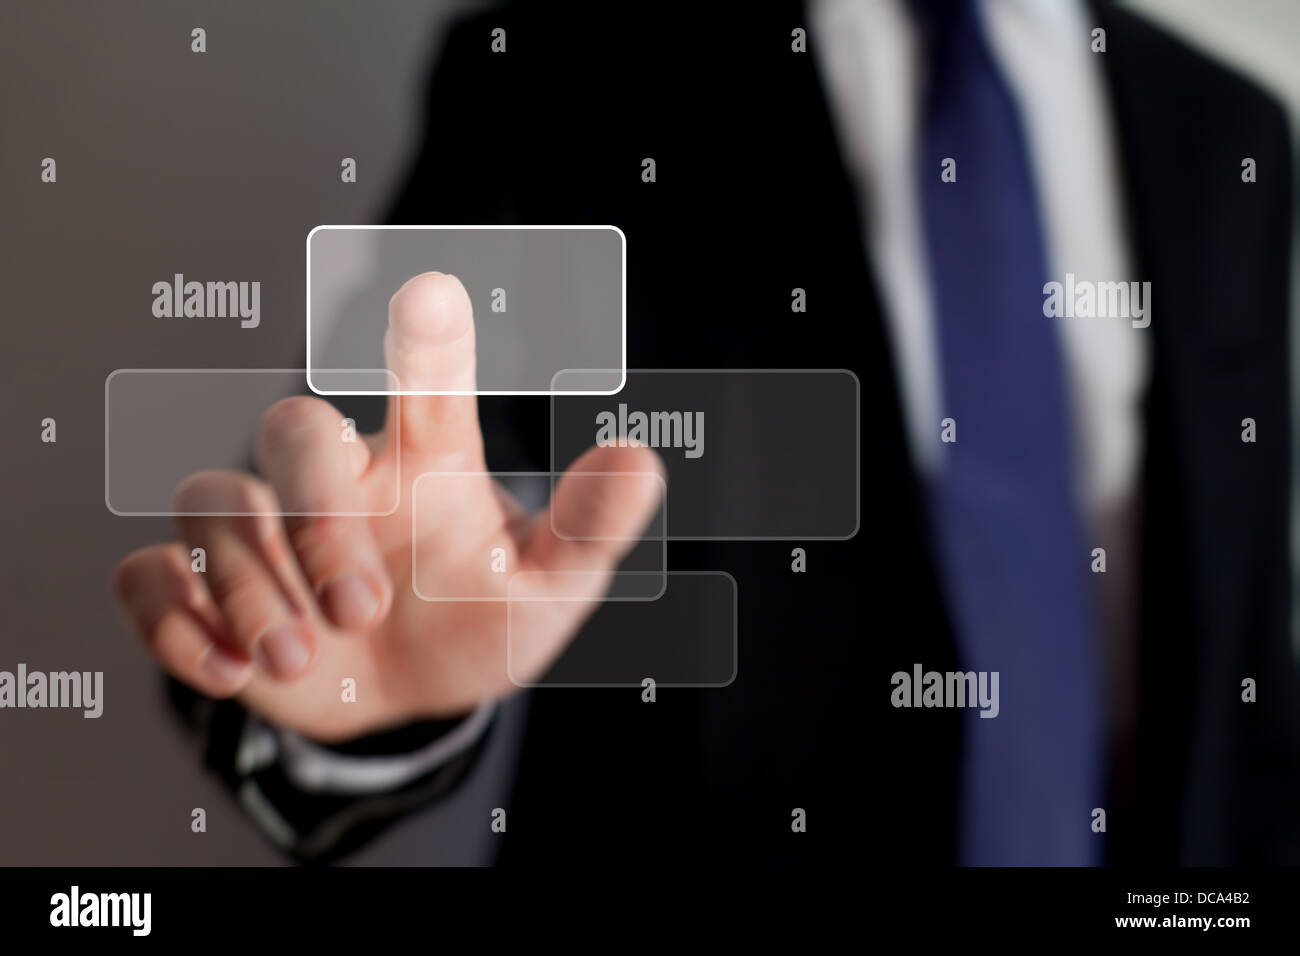 smart interface of business technology - Stock Image